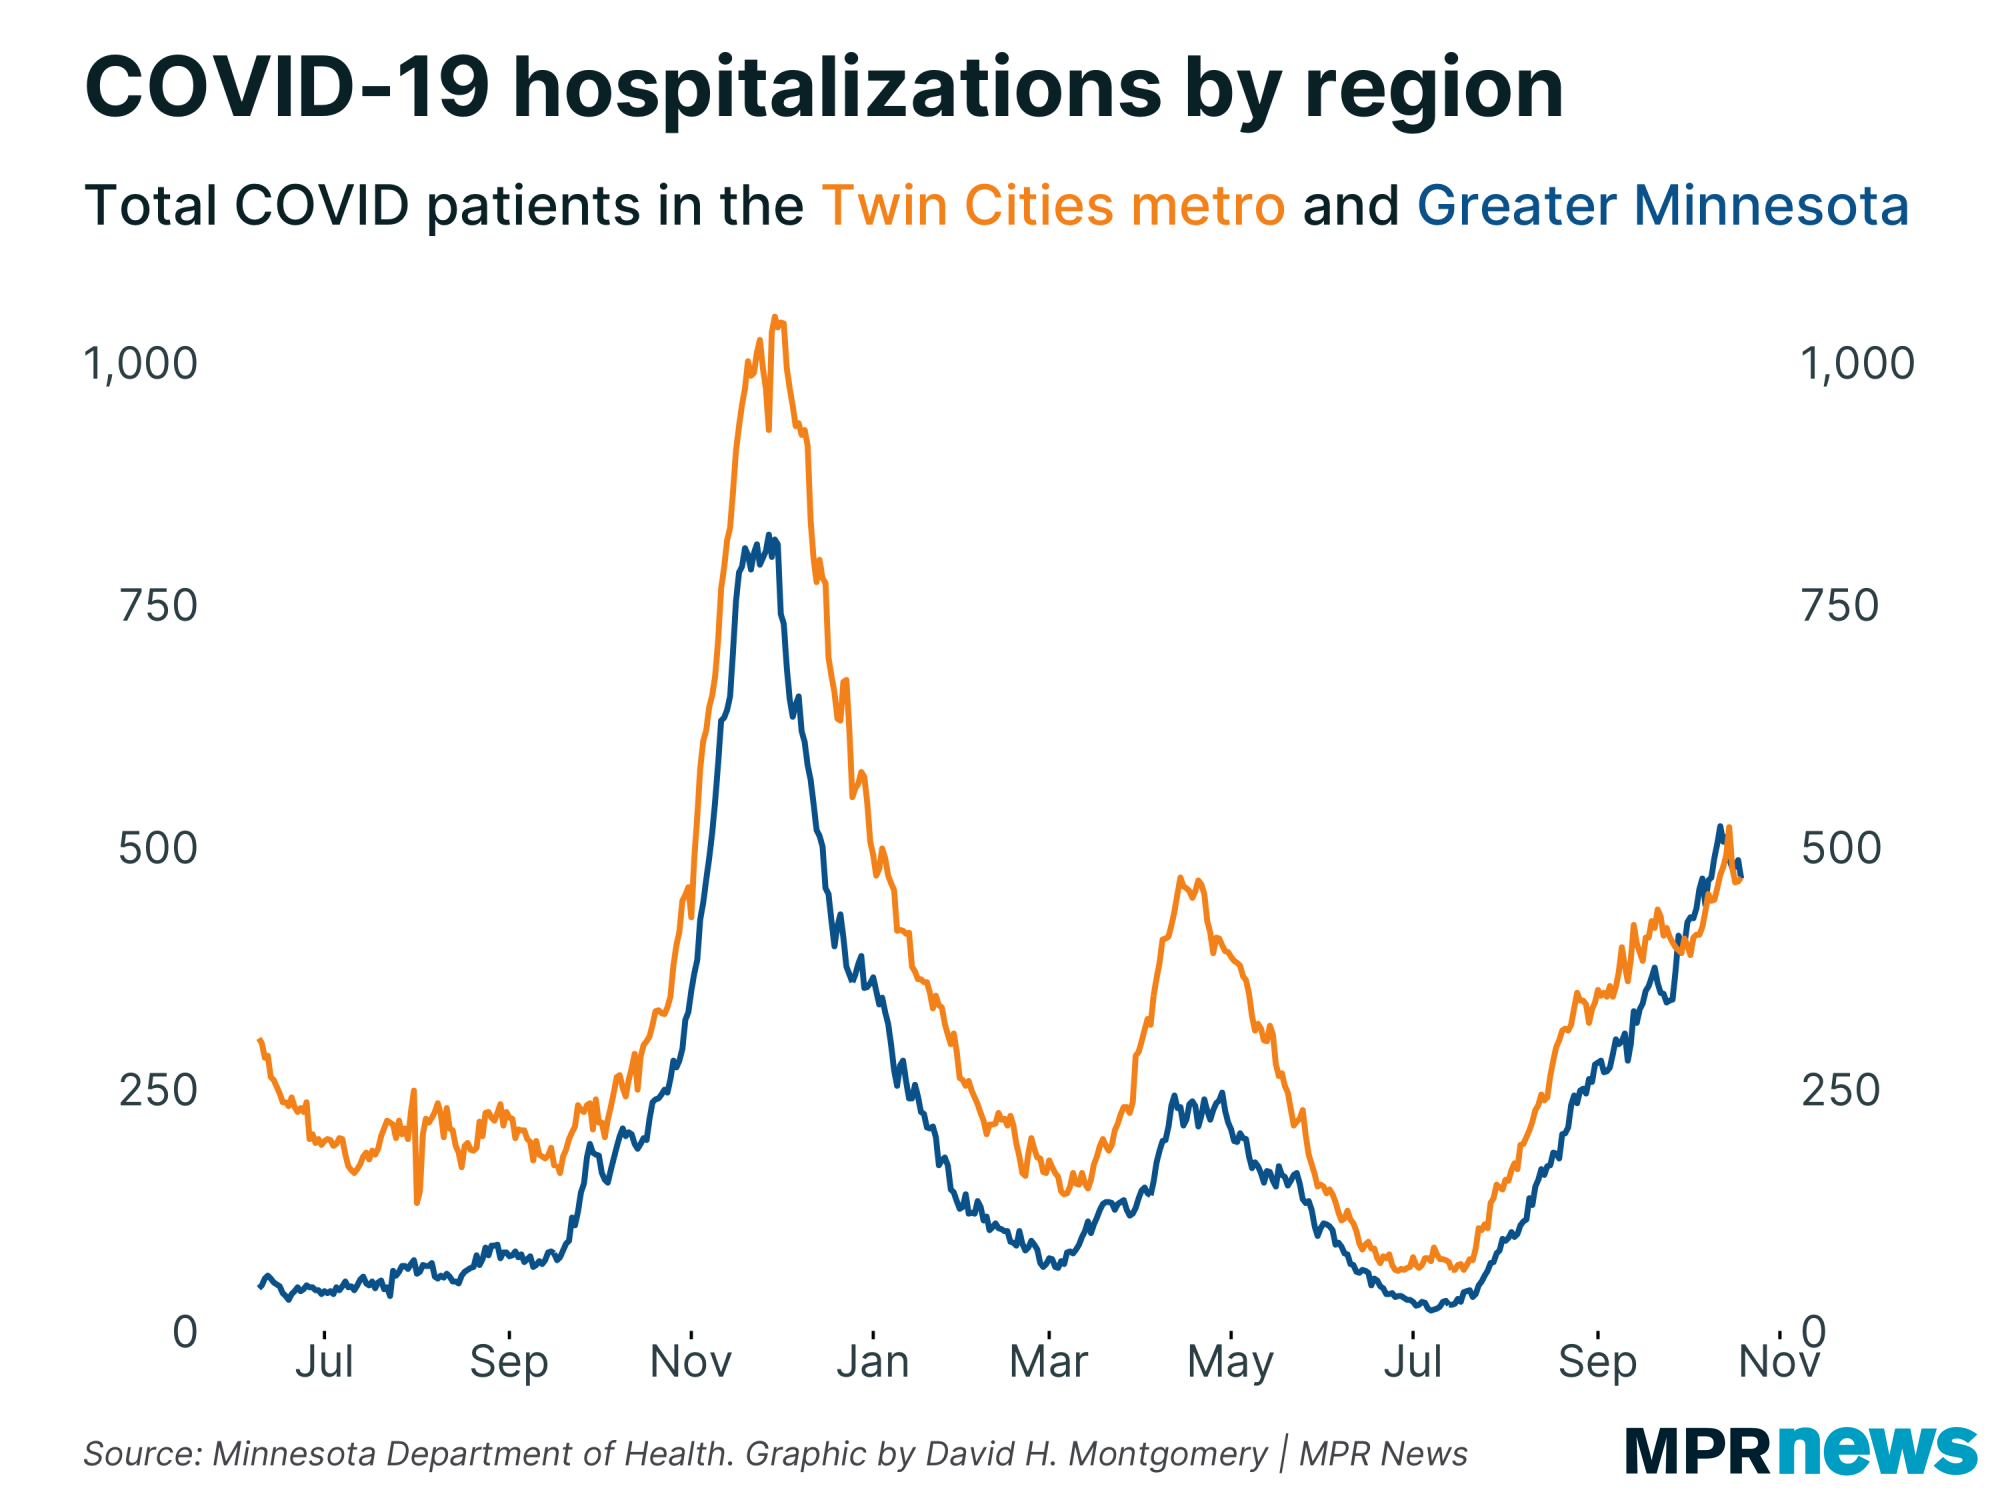 Graph showing COVID-19 hospitalizations by region